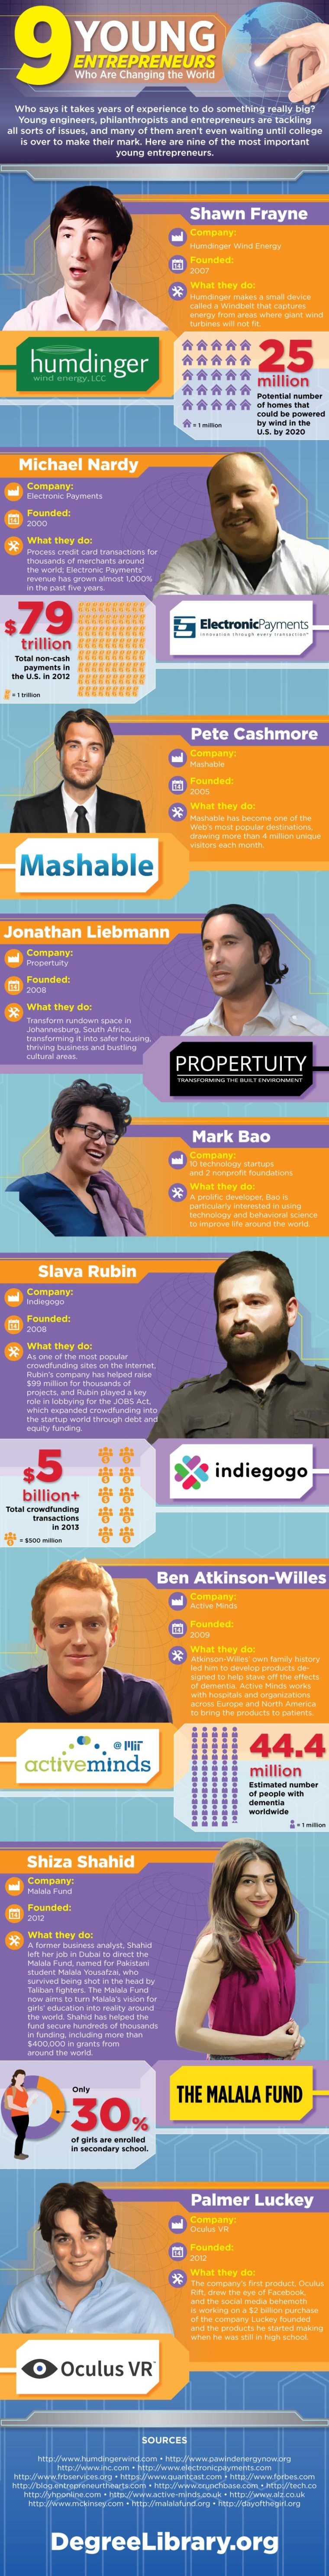 Young entrepreneurs who changes the world - infographic